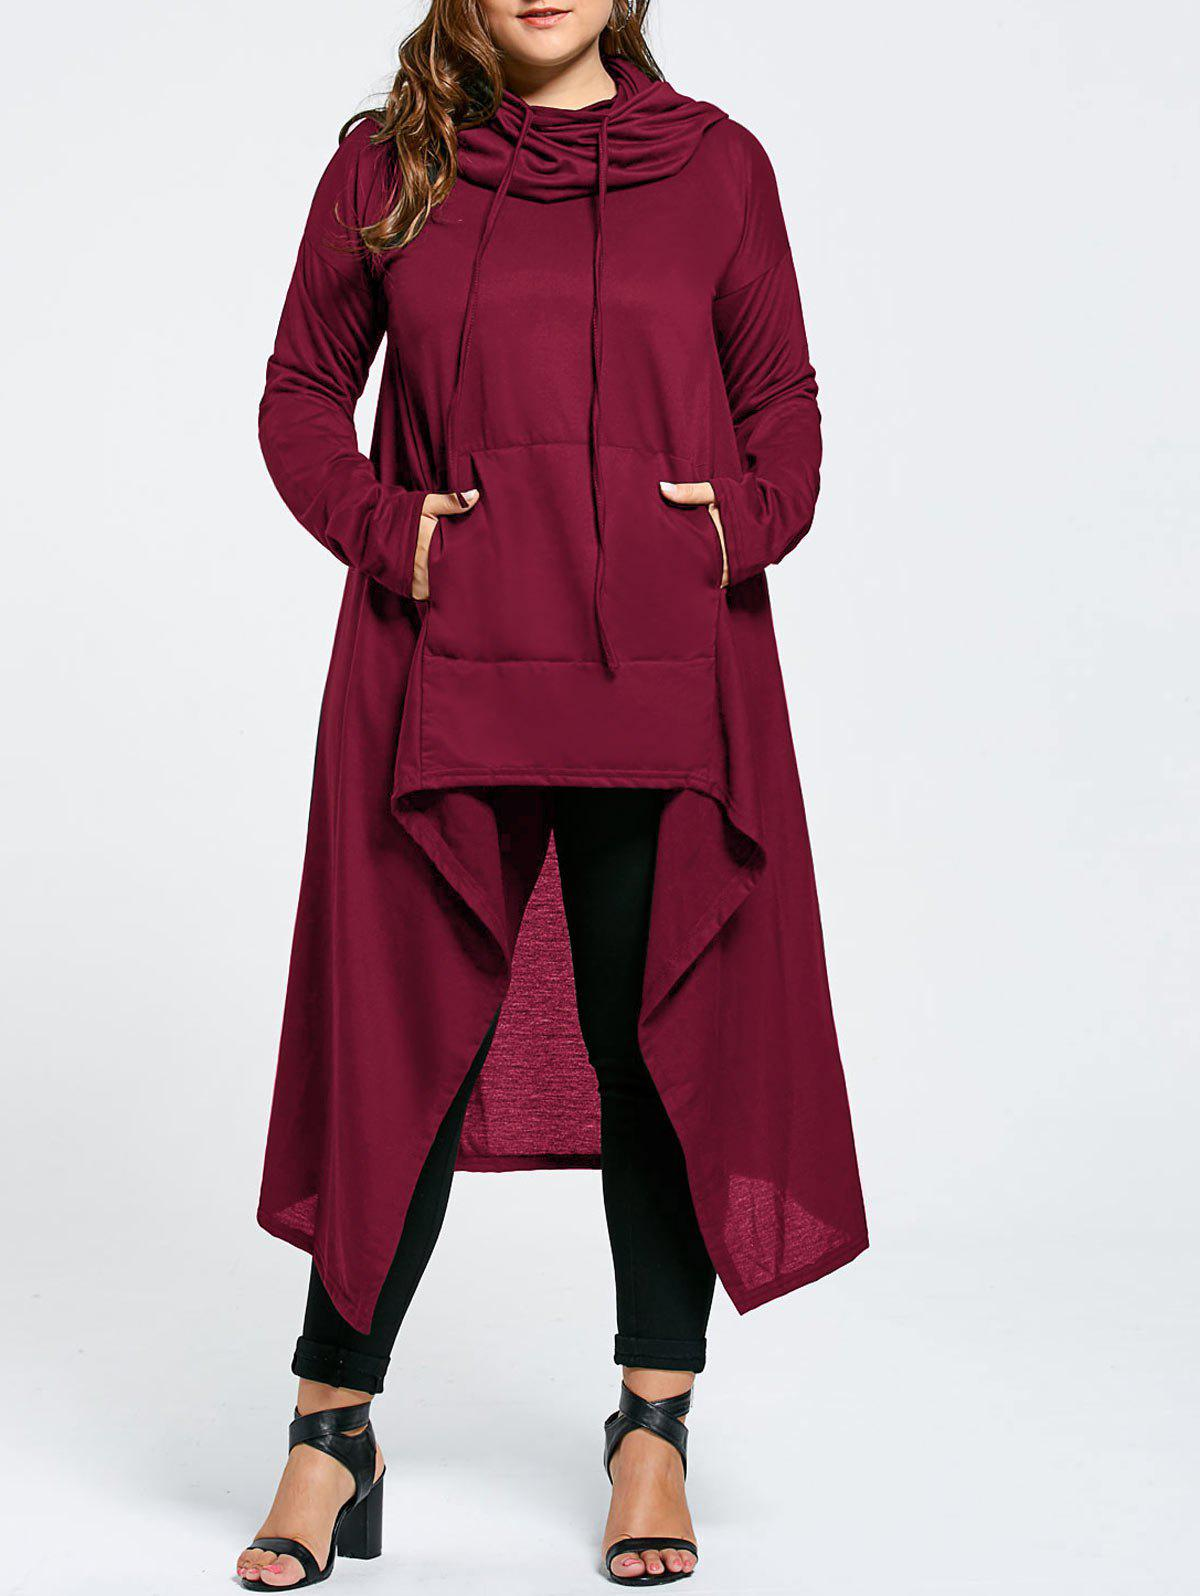 Plus Size Maxi Asymmetric Funnel Collar HoodieWOMEN<br><br>Size: 8XL; Color: WINE RED; Material: Cotton Blend,Polyester; Shirt Length: X-Long; Sleeve Length: Full; Style: Fashion; Pattern Style: Solid; Season: Fall,Winter; Weight: 0.5800kg; Package Contents: 1 x Hoodie;